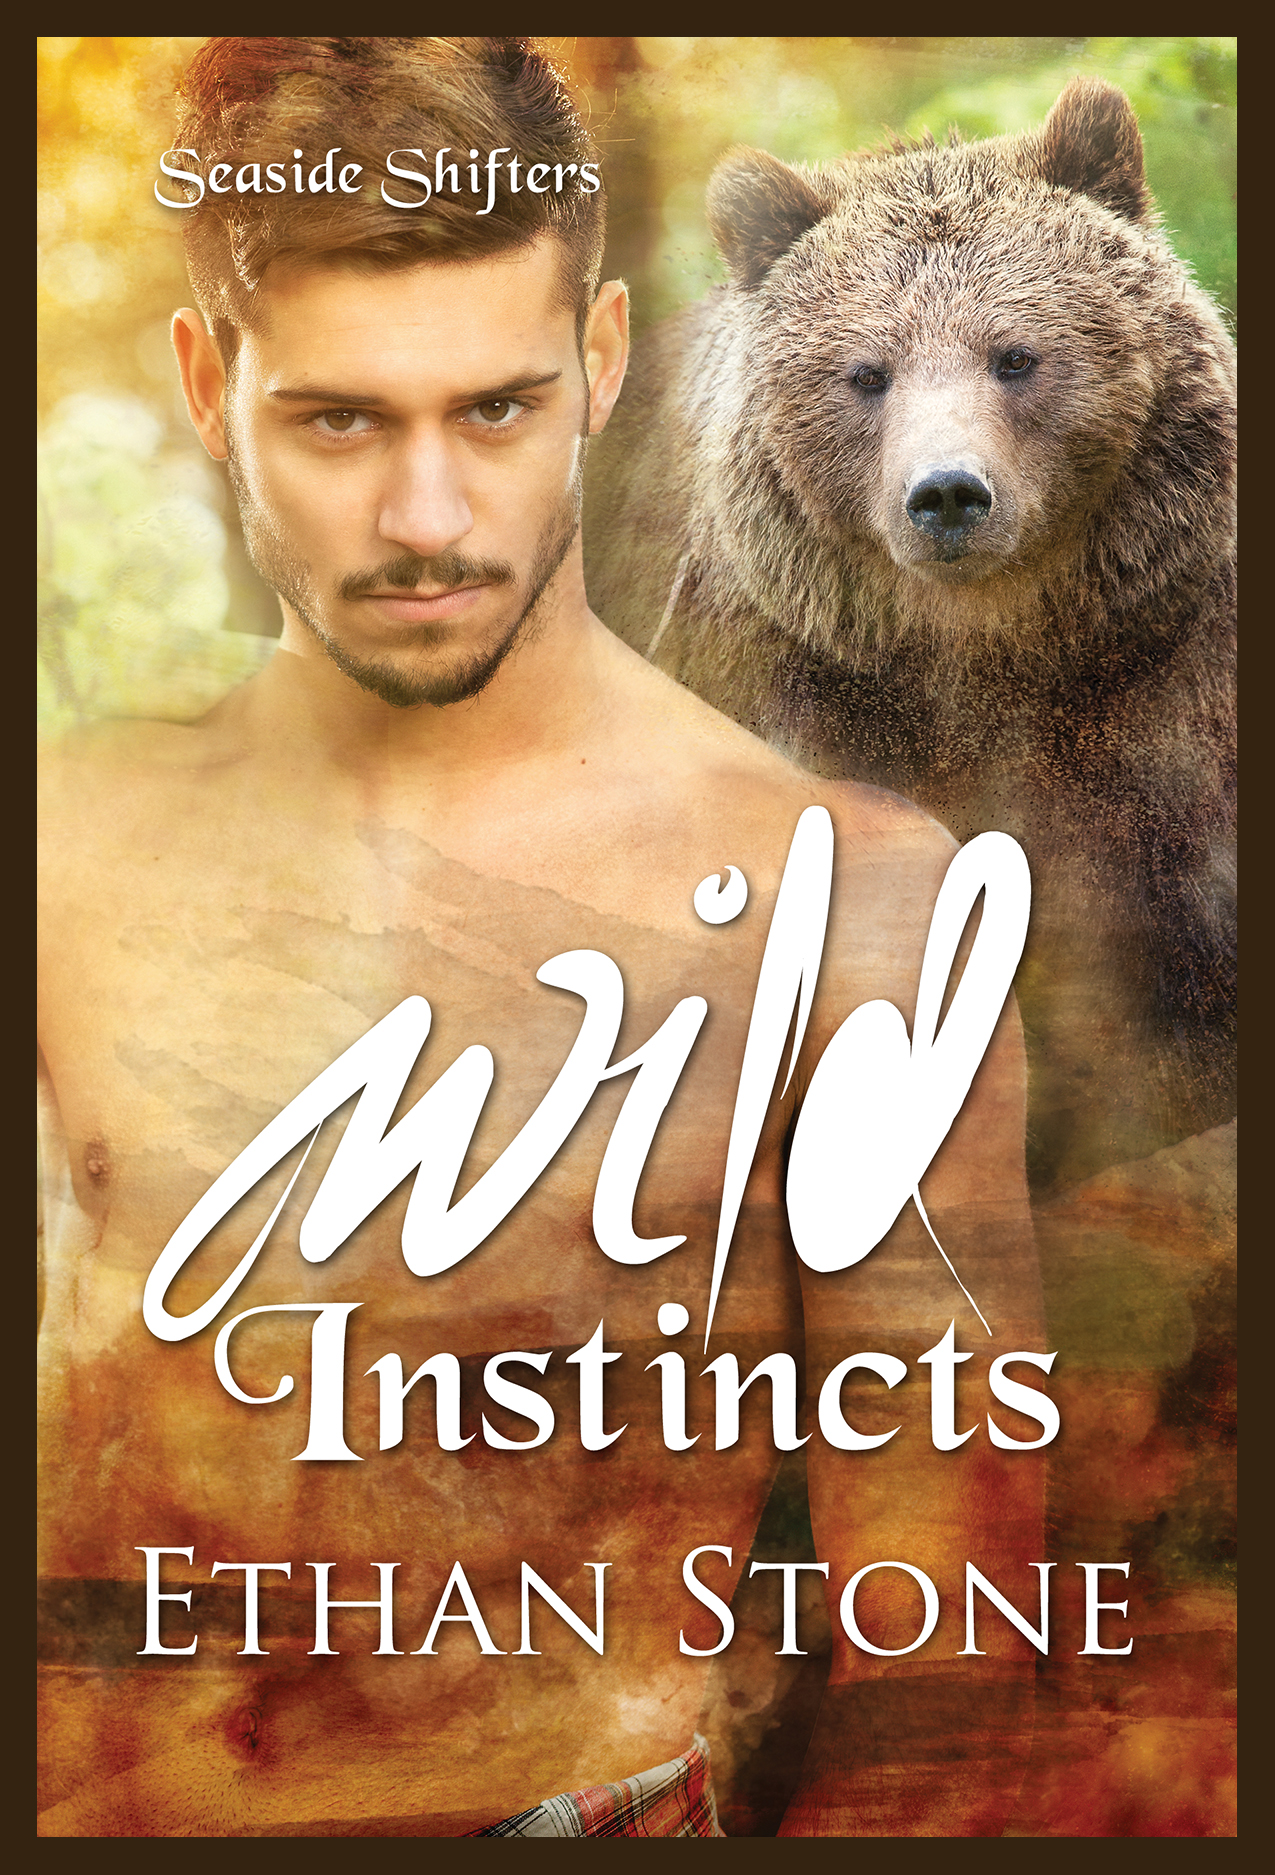 Wild Instincts by Ethan Stone